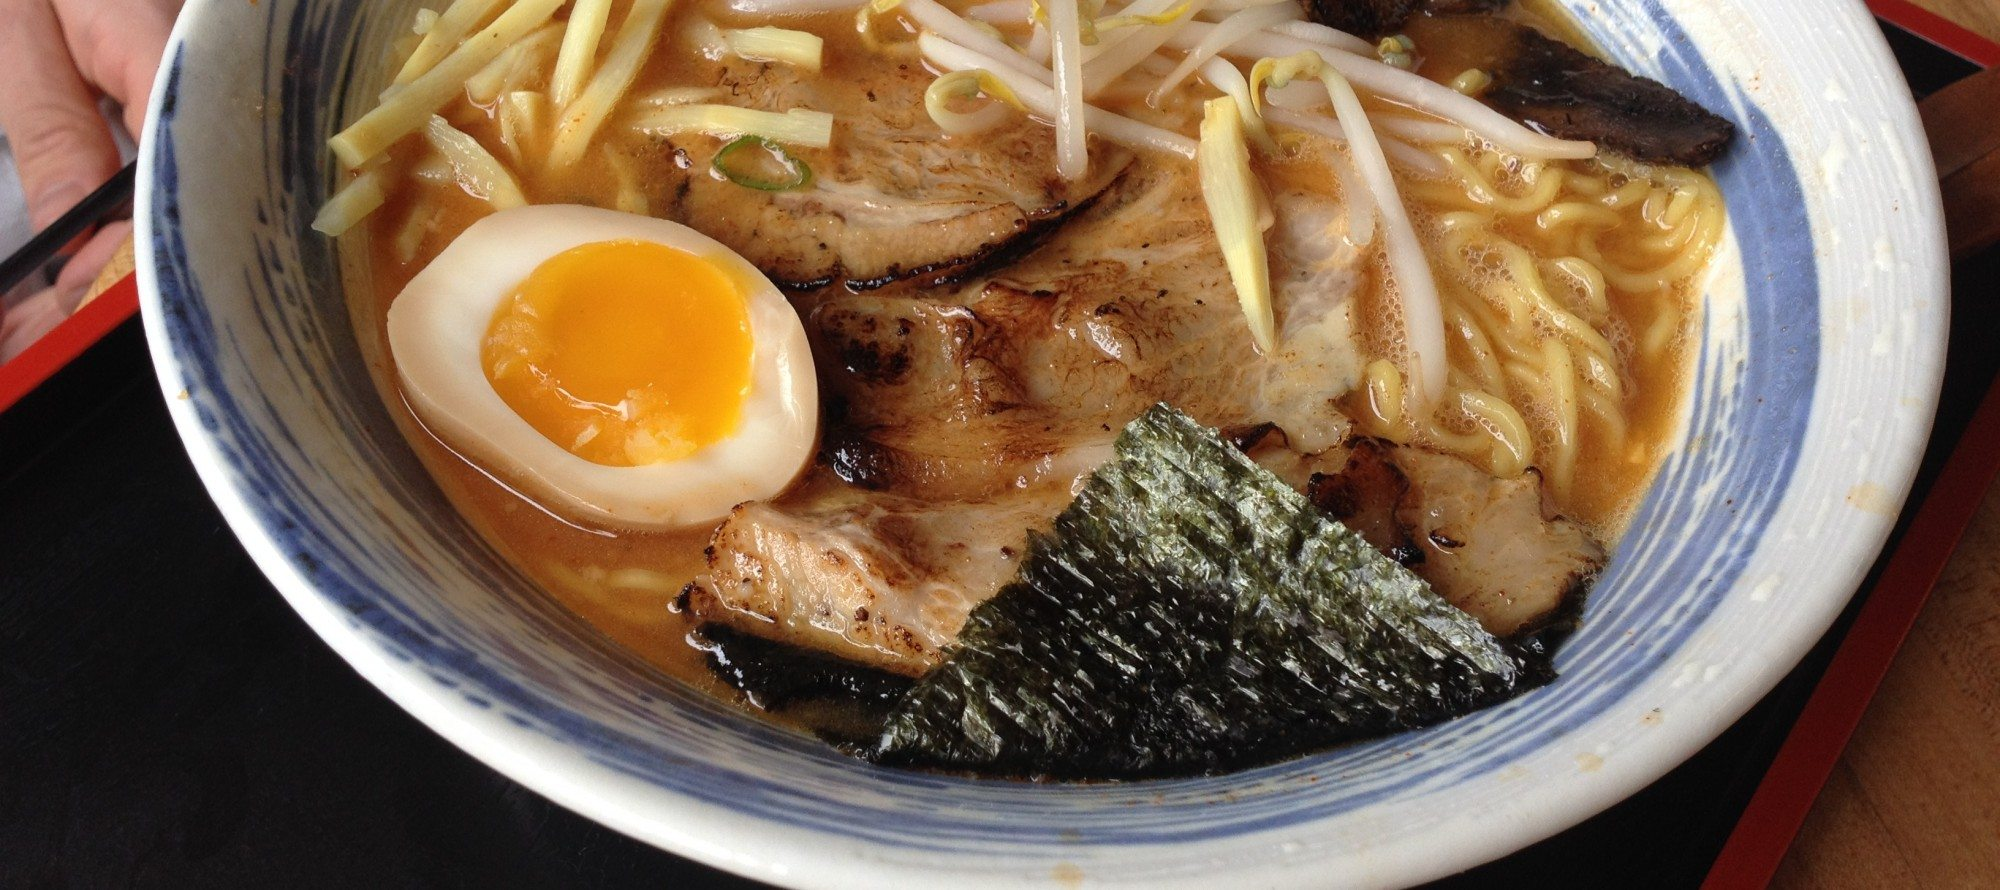 LUNCH PICK: Head to Ginza for real ramen